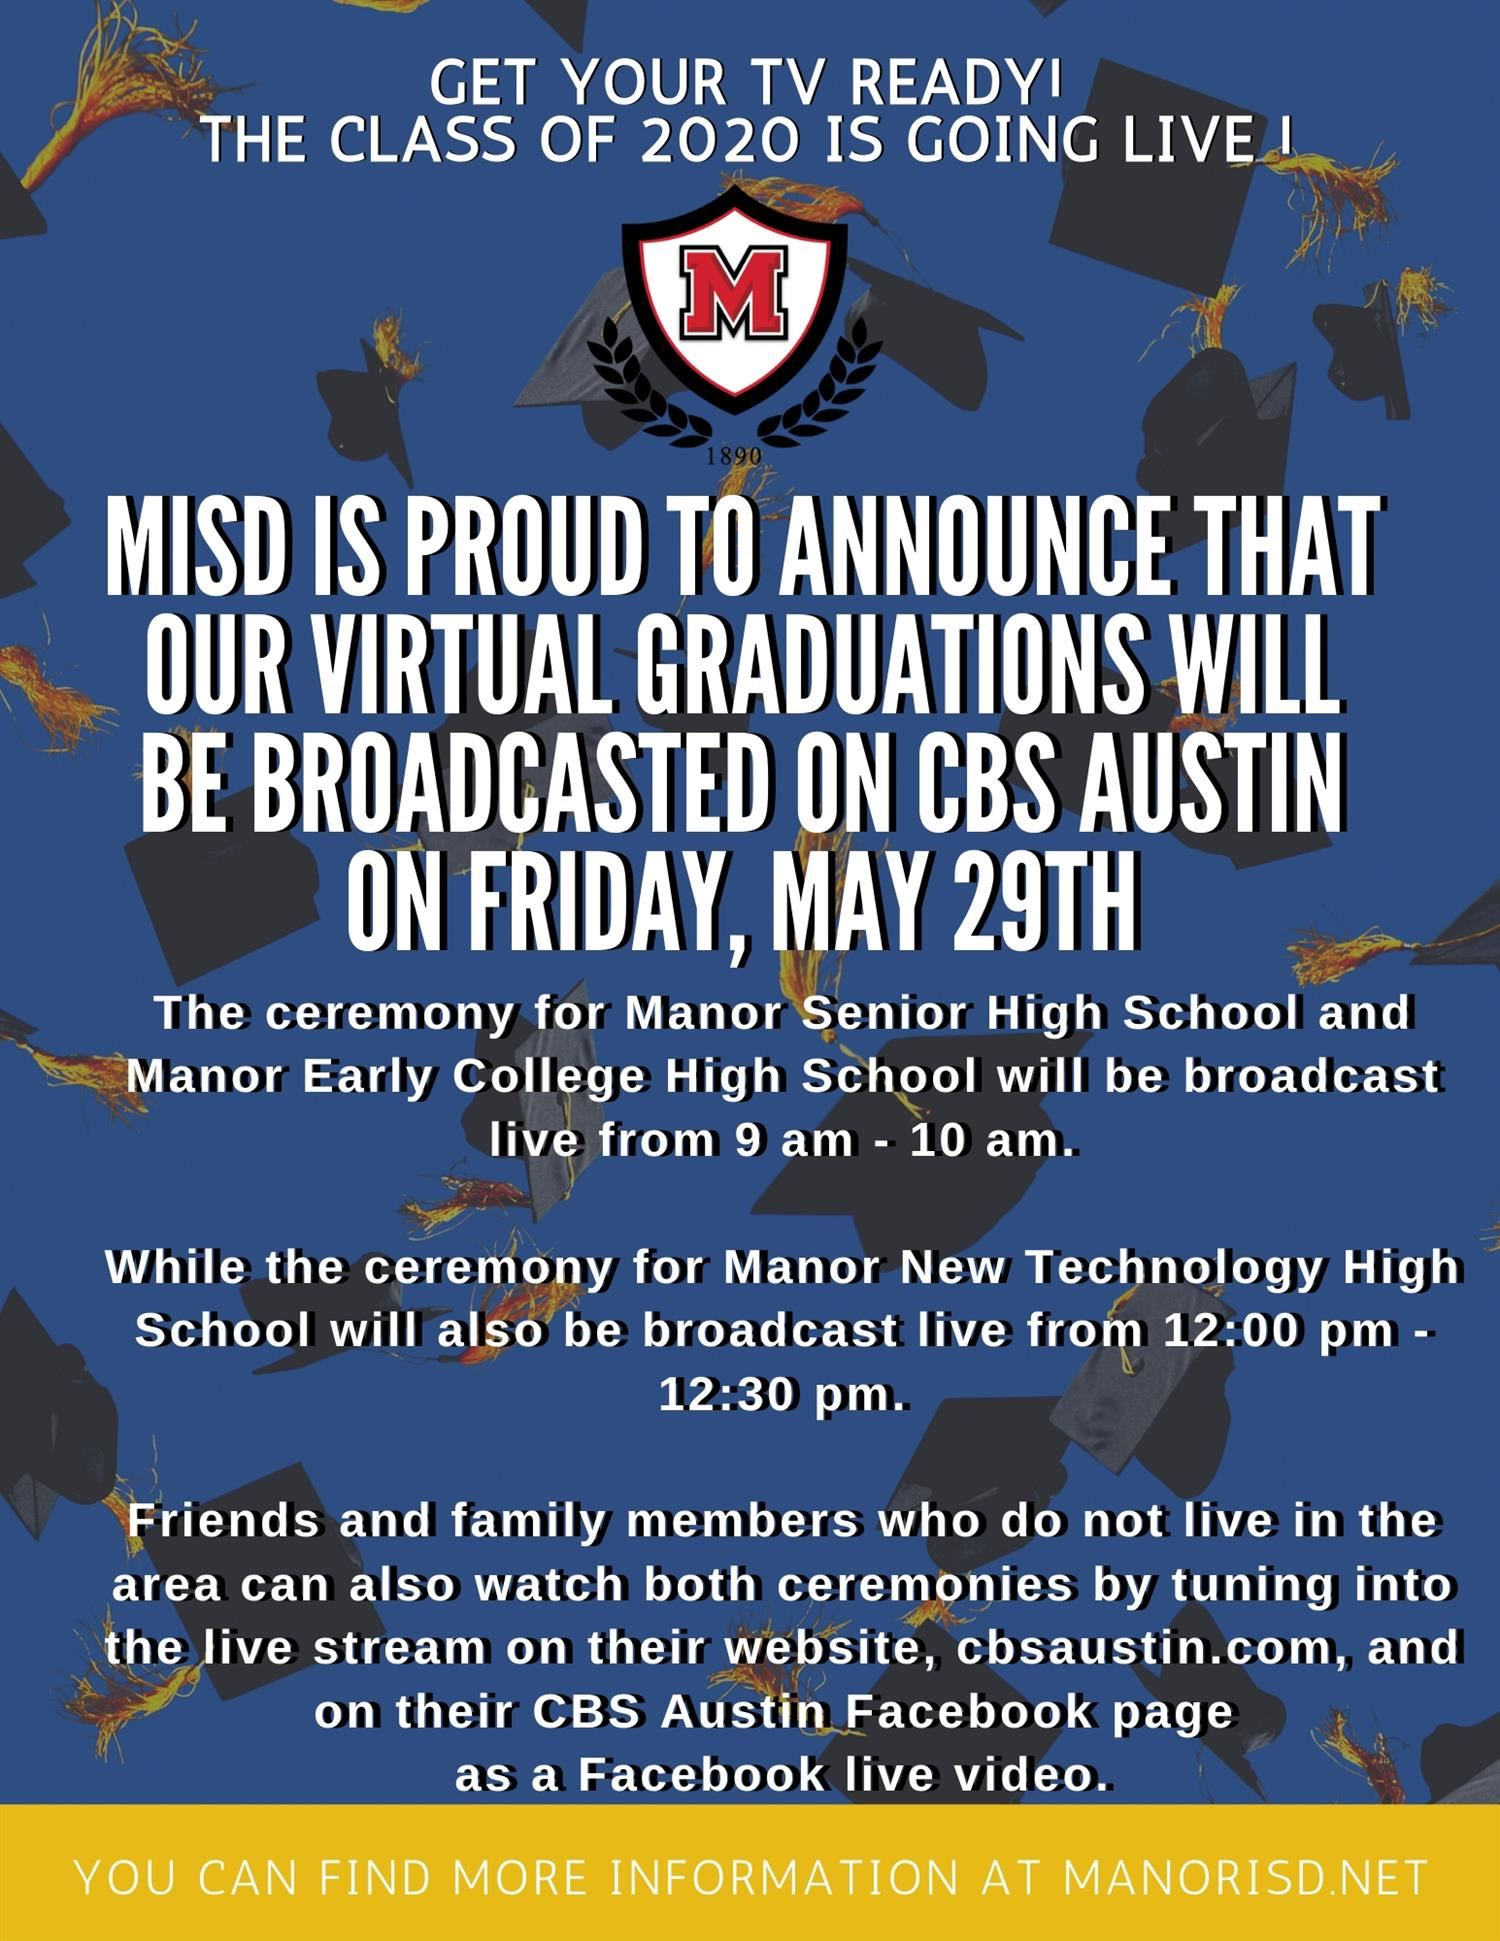 Manor ISD Class of 2020 Virtual Graduation to Air Live on CBS Austin